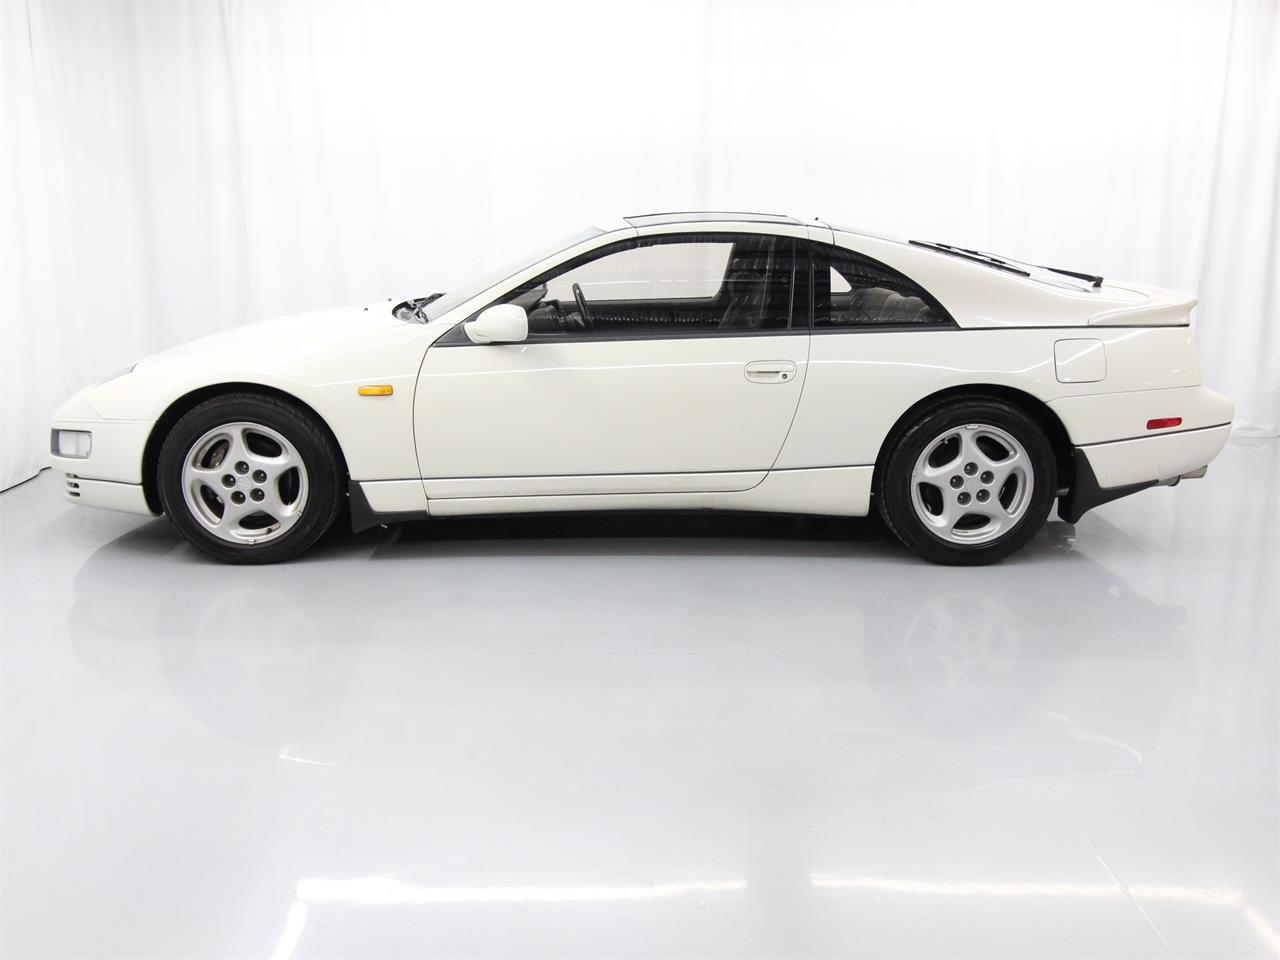 1991 Nissan Fairlady (CC-1313408) for sale in Christiansburg, Virginia